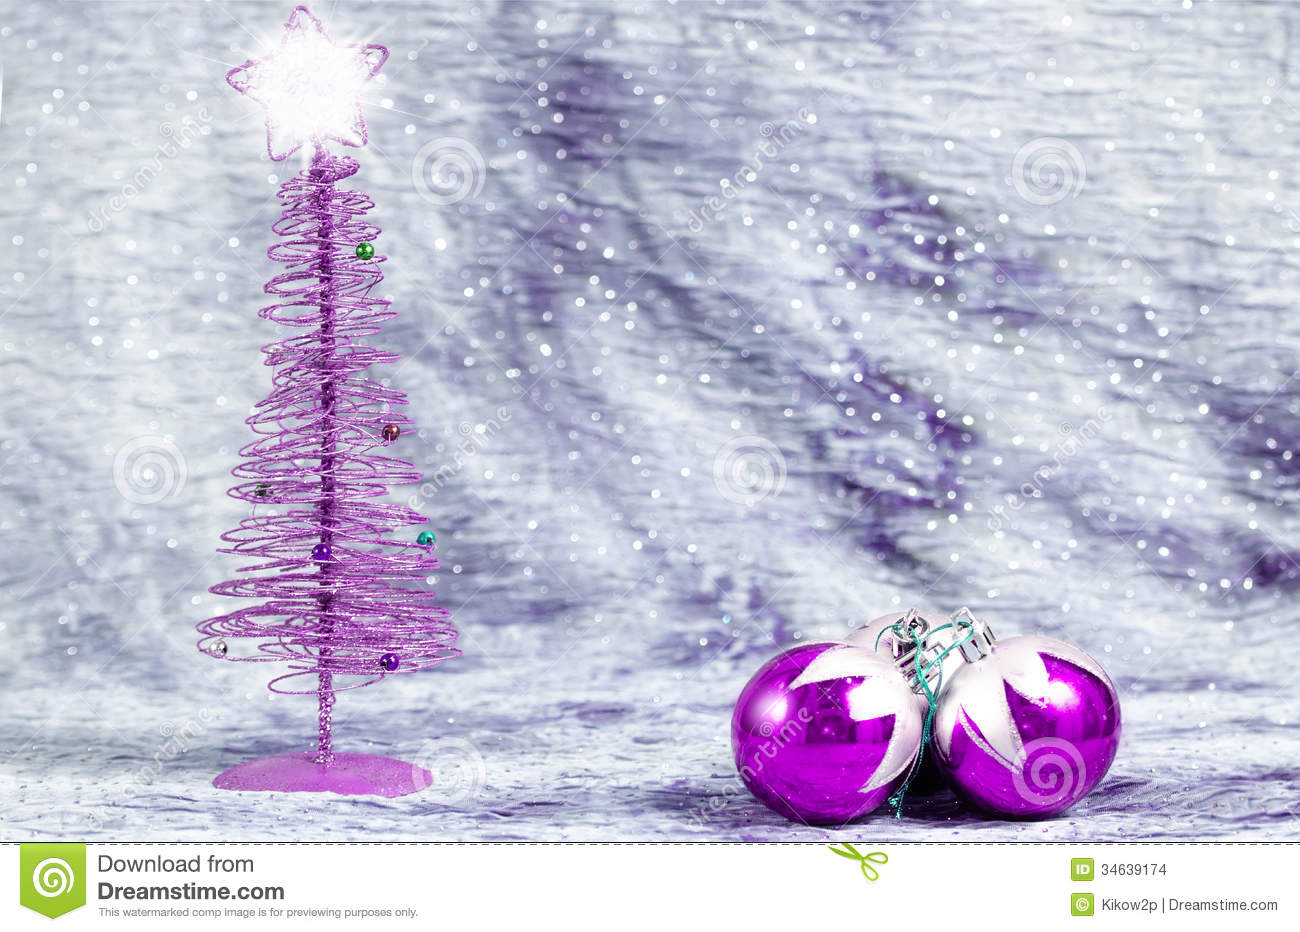 Lavender christmas ornaments - Purple Christmas Ornaments With Silver Background